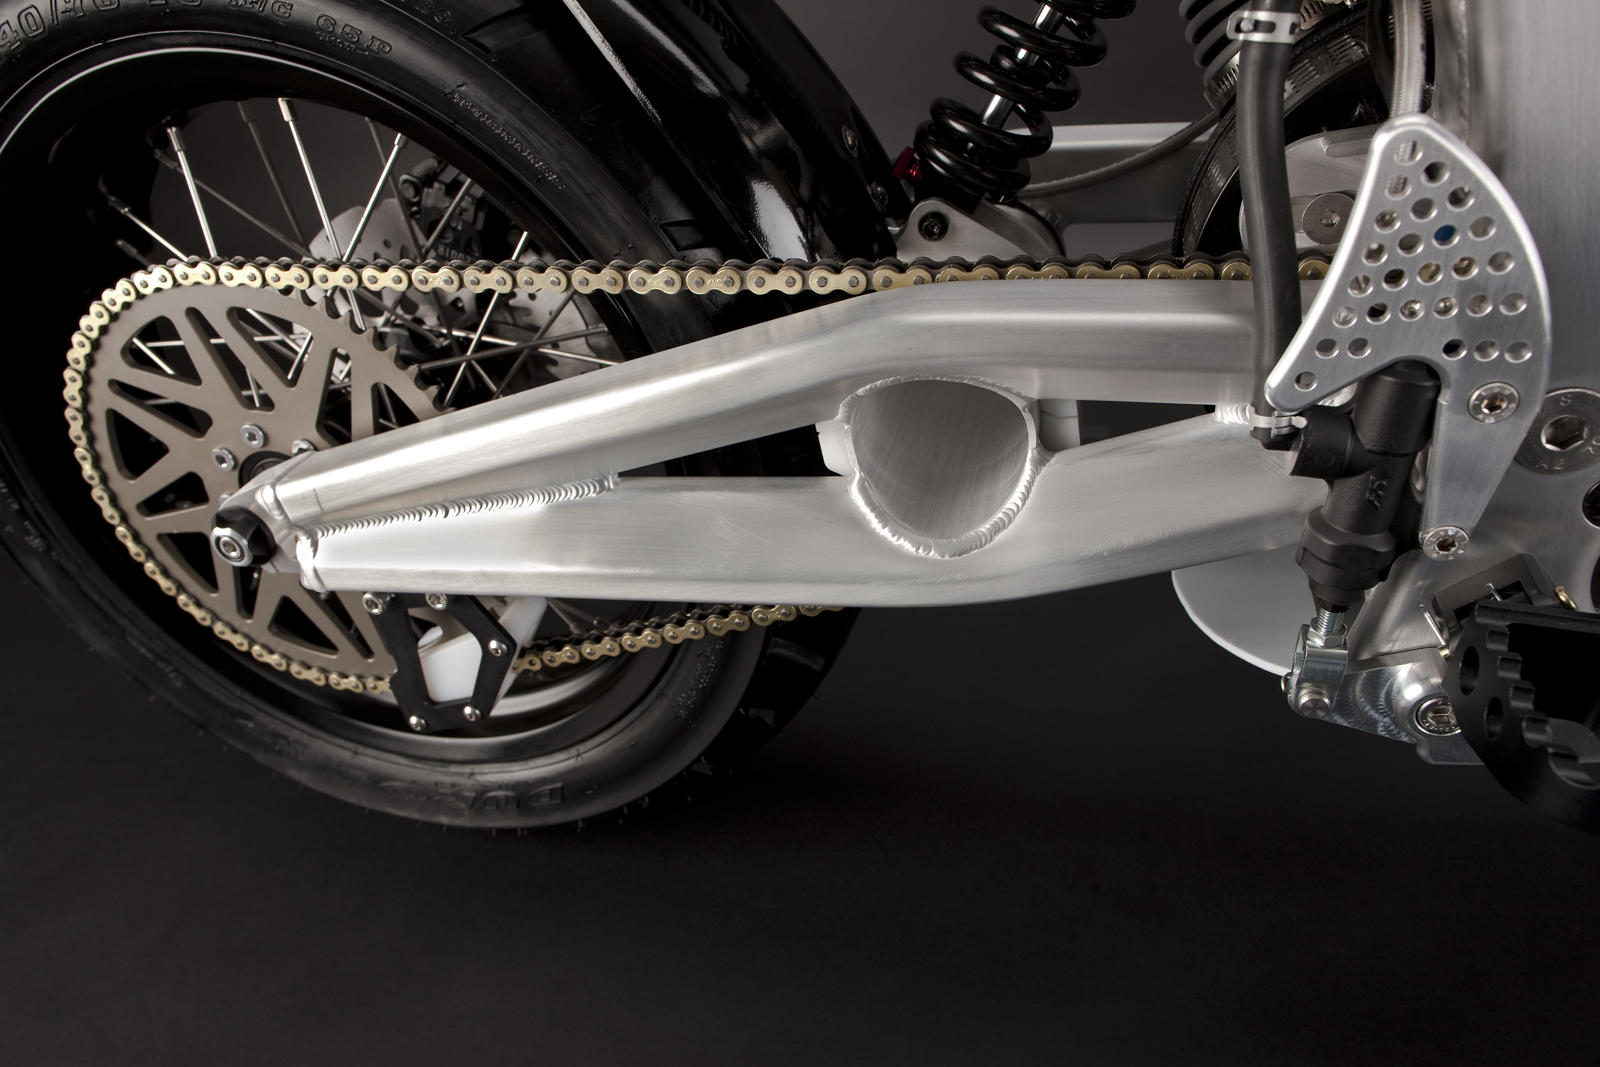 2010 Zero S Electric Motorcycle: Swing Arm